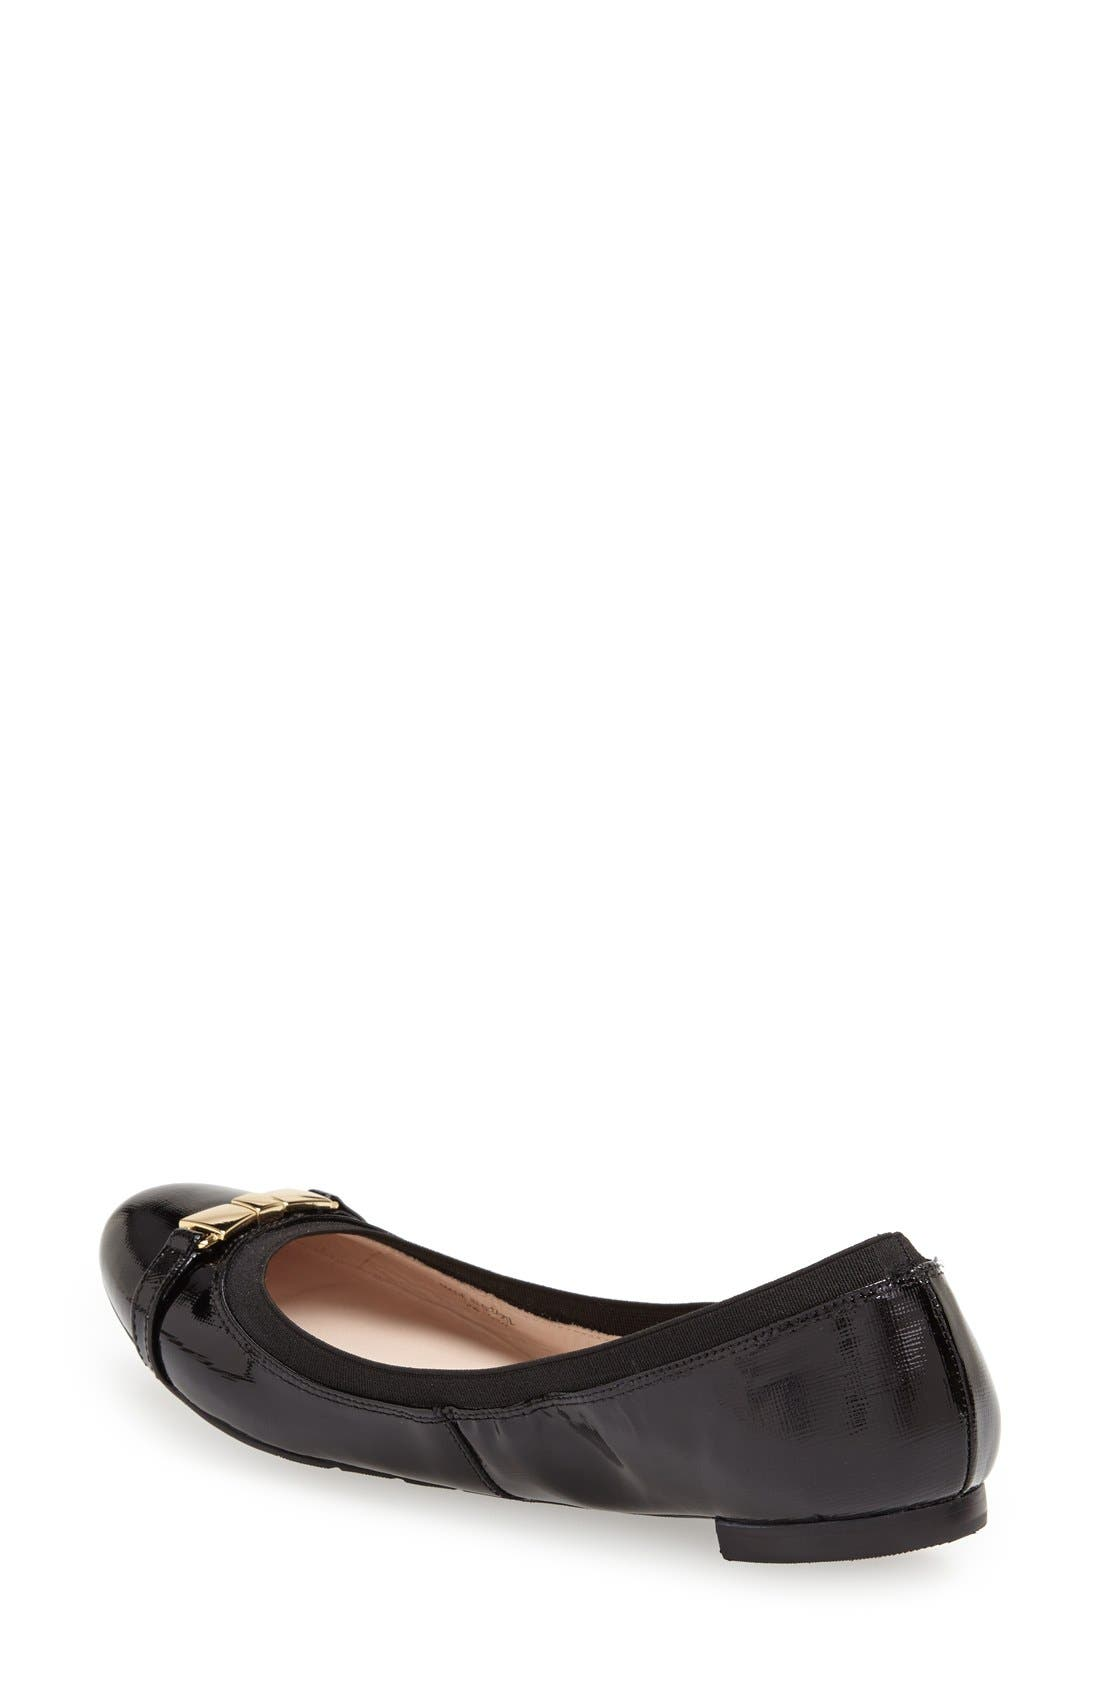 Alternate Image 2  - kate spade new york 'blaine' patent leather skimmer flat (Women)